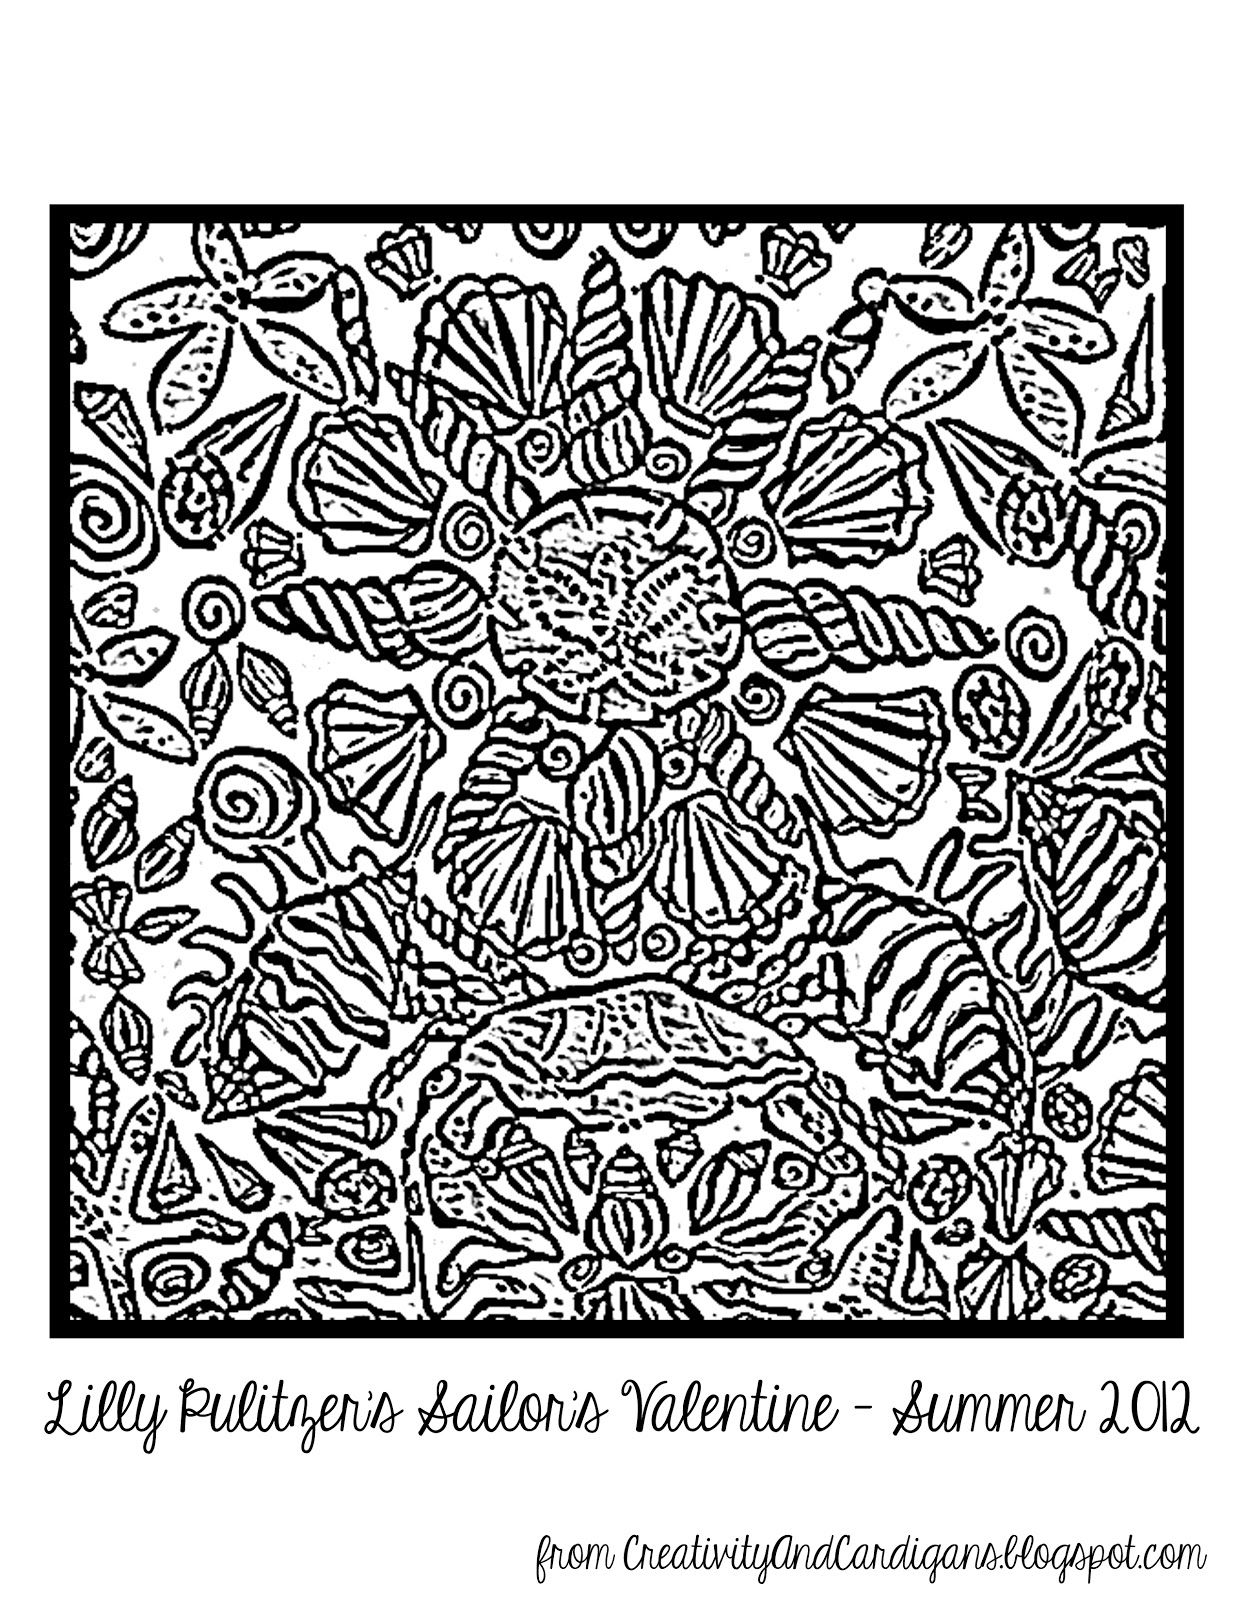 lilly pulitzer sailor's valentine coloring page ...